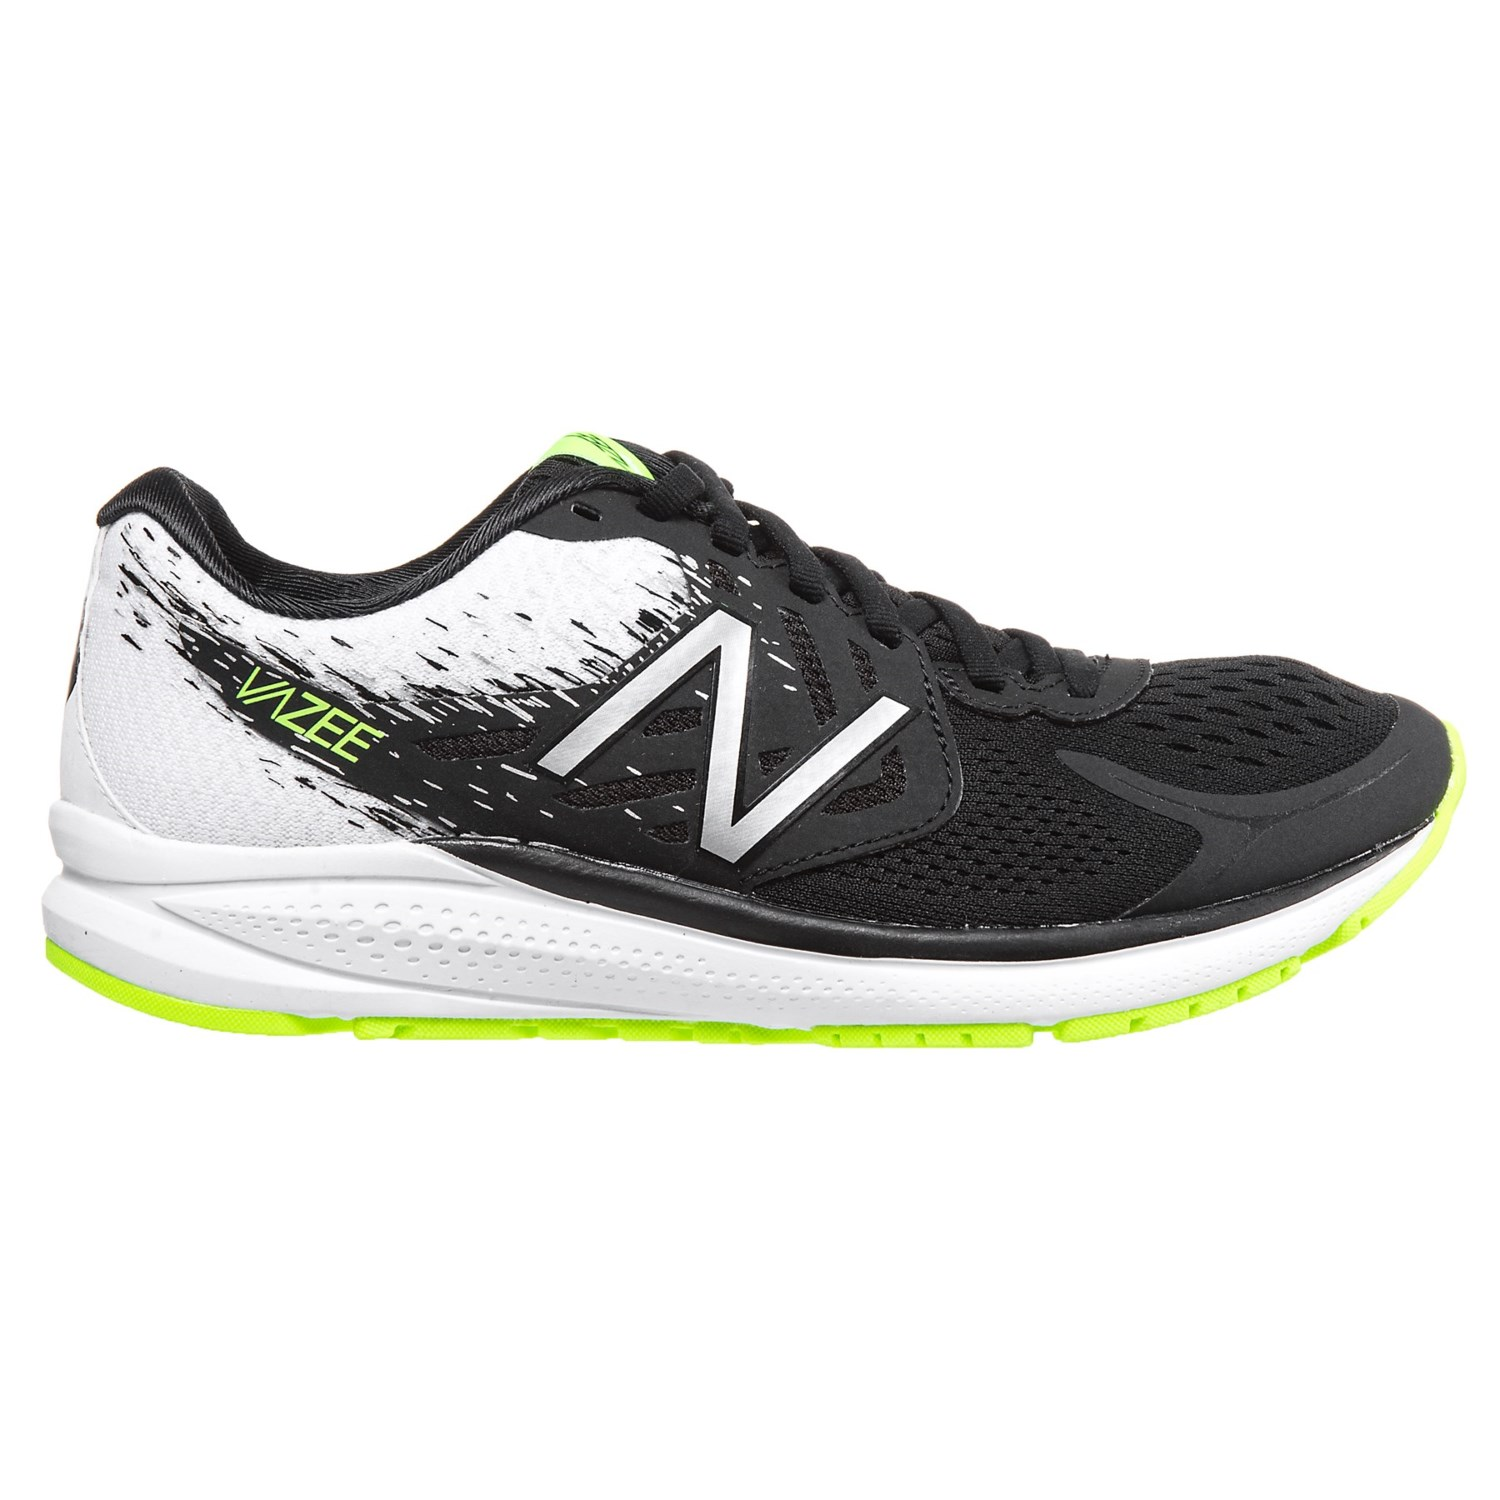 New Balance Vazee Prism Running Shoes Review